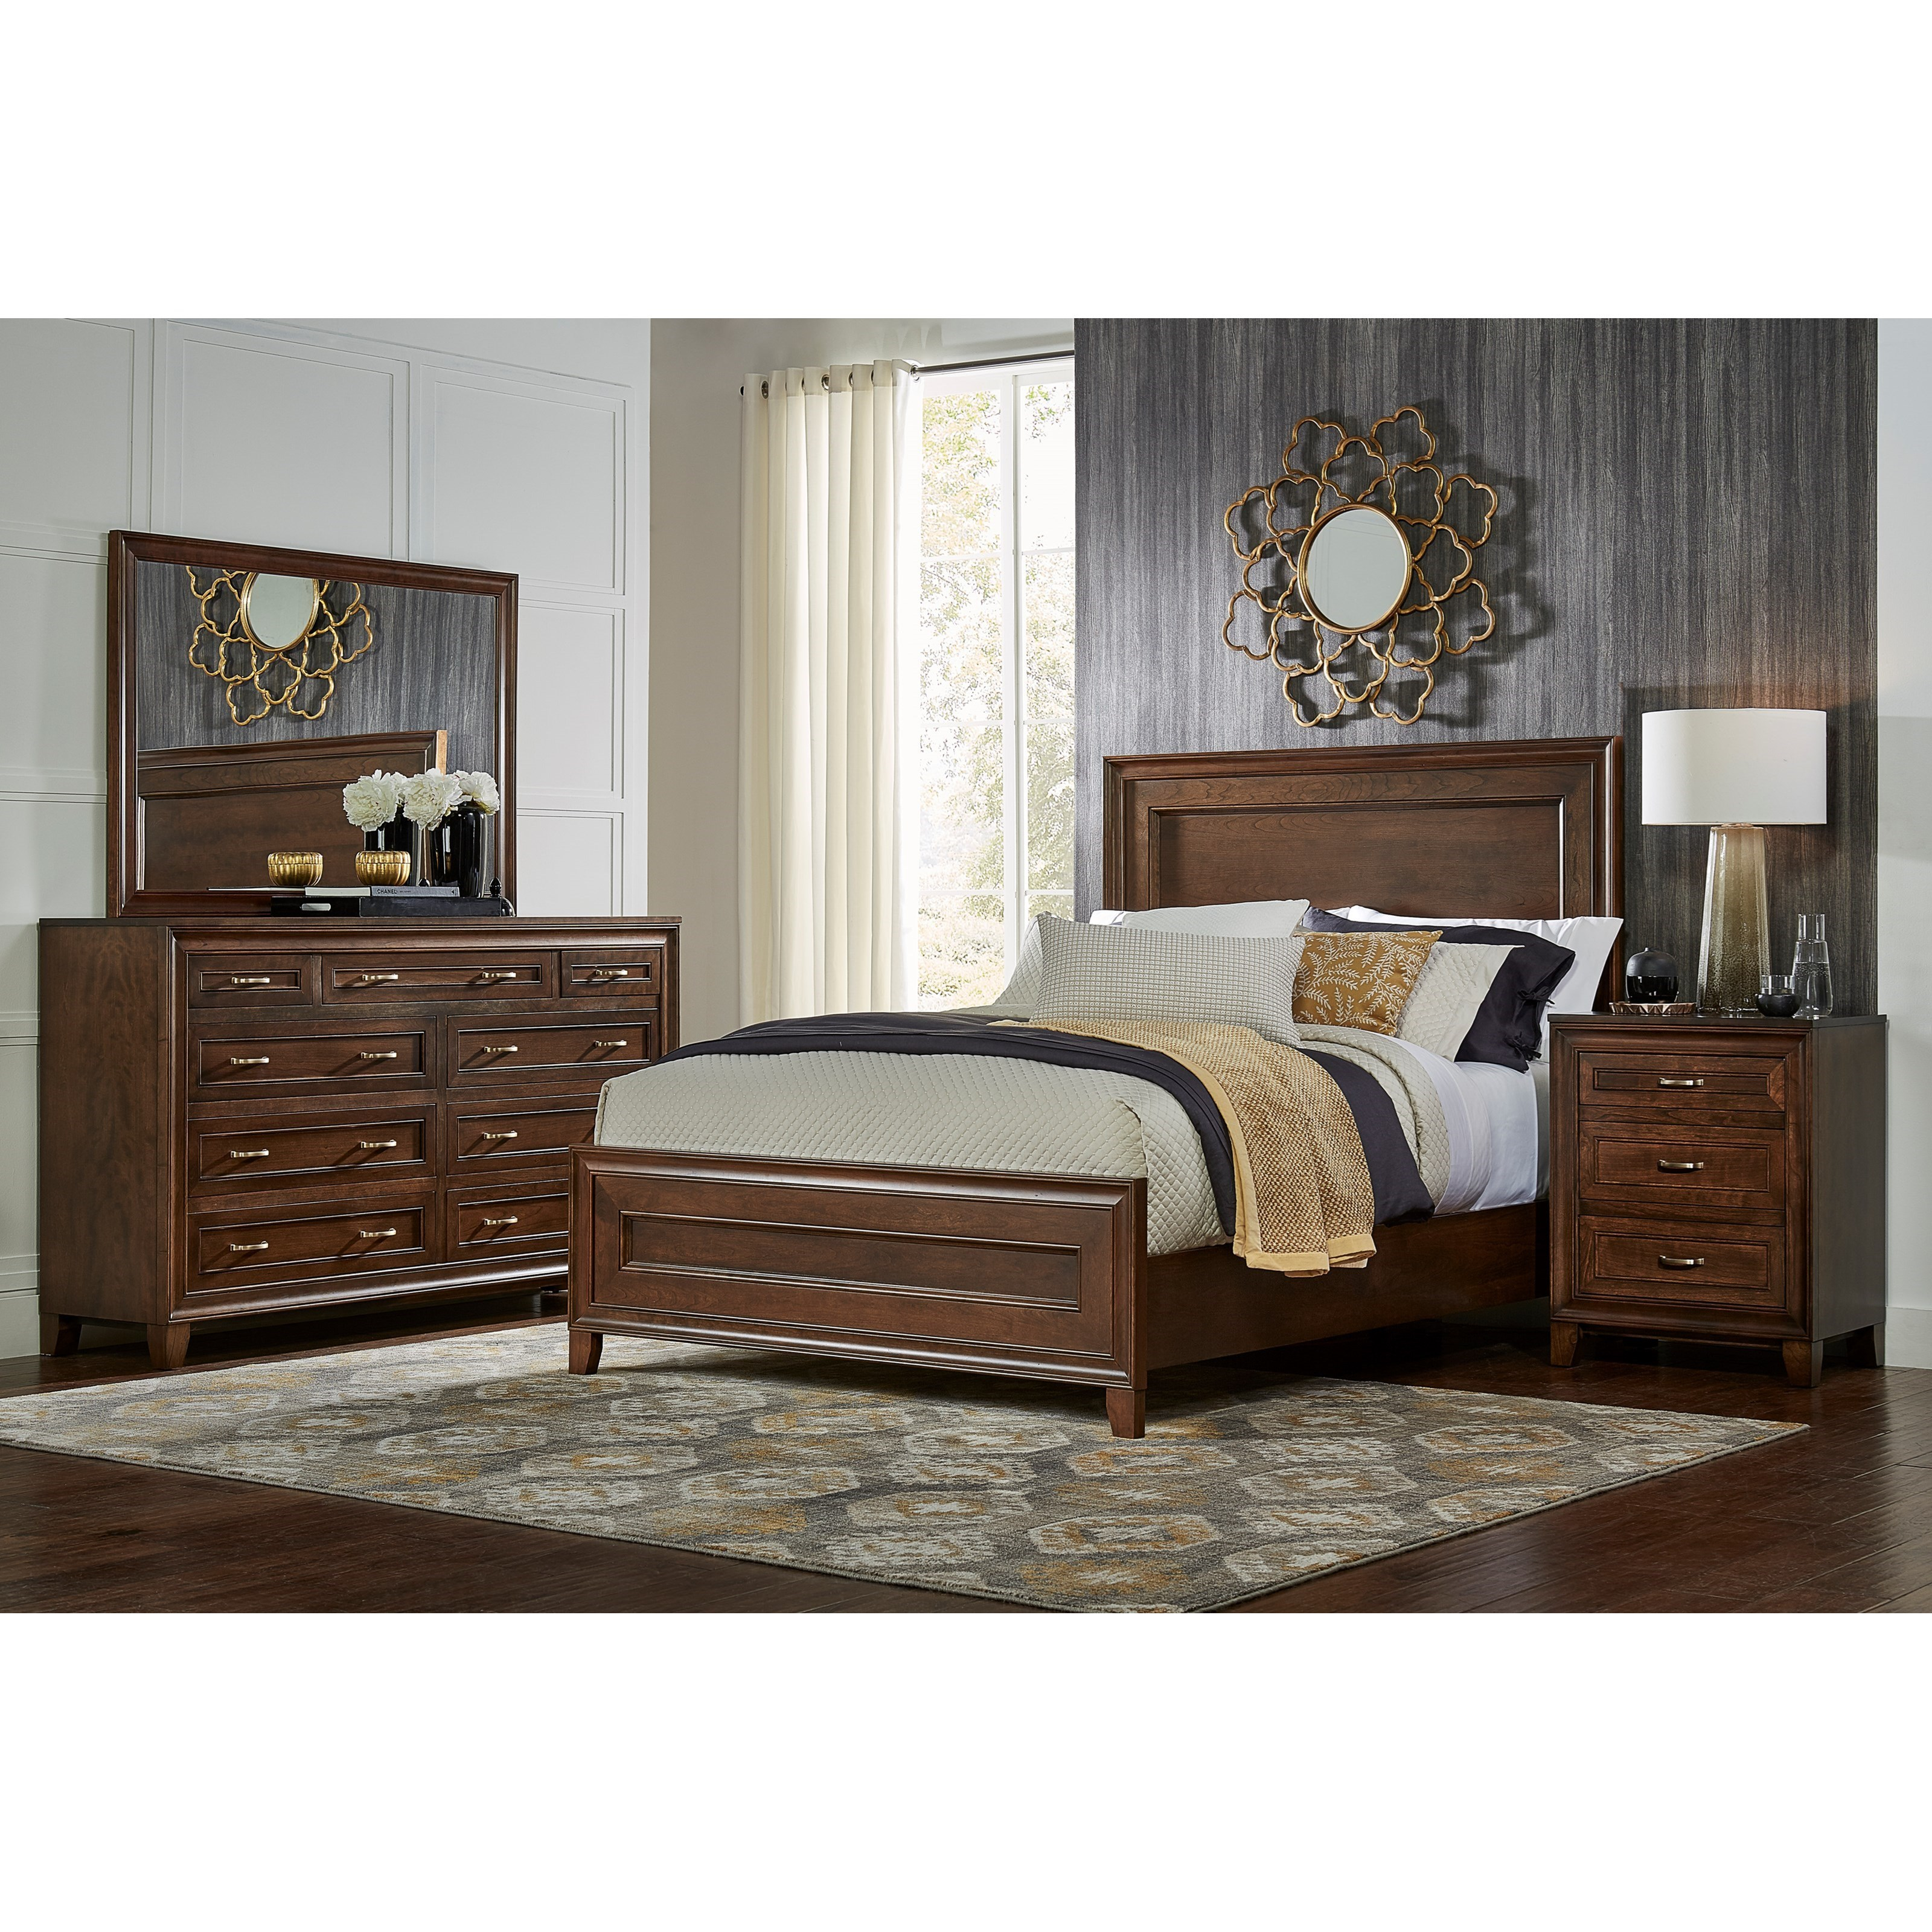 Summerville Queen Bedroom Group by Daniel's Amish at H.L. Stephens